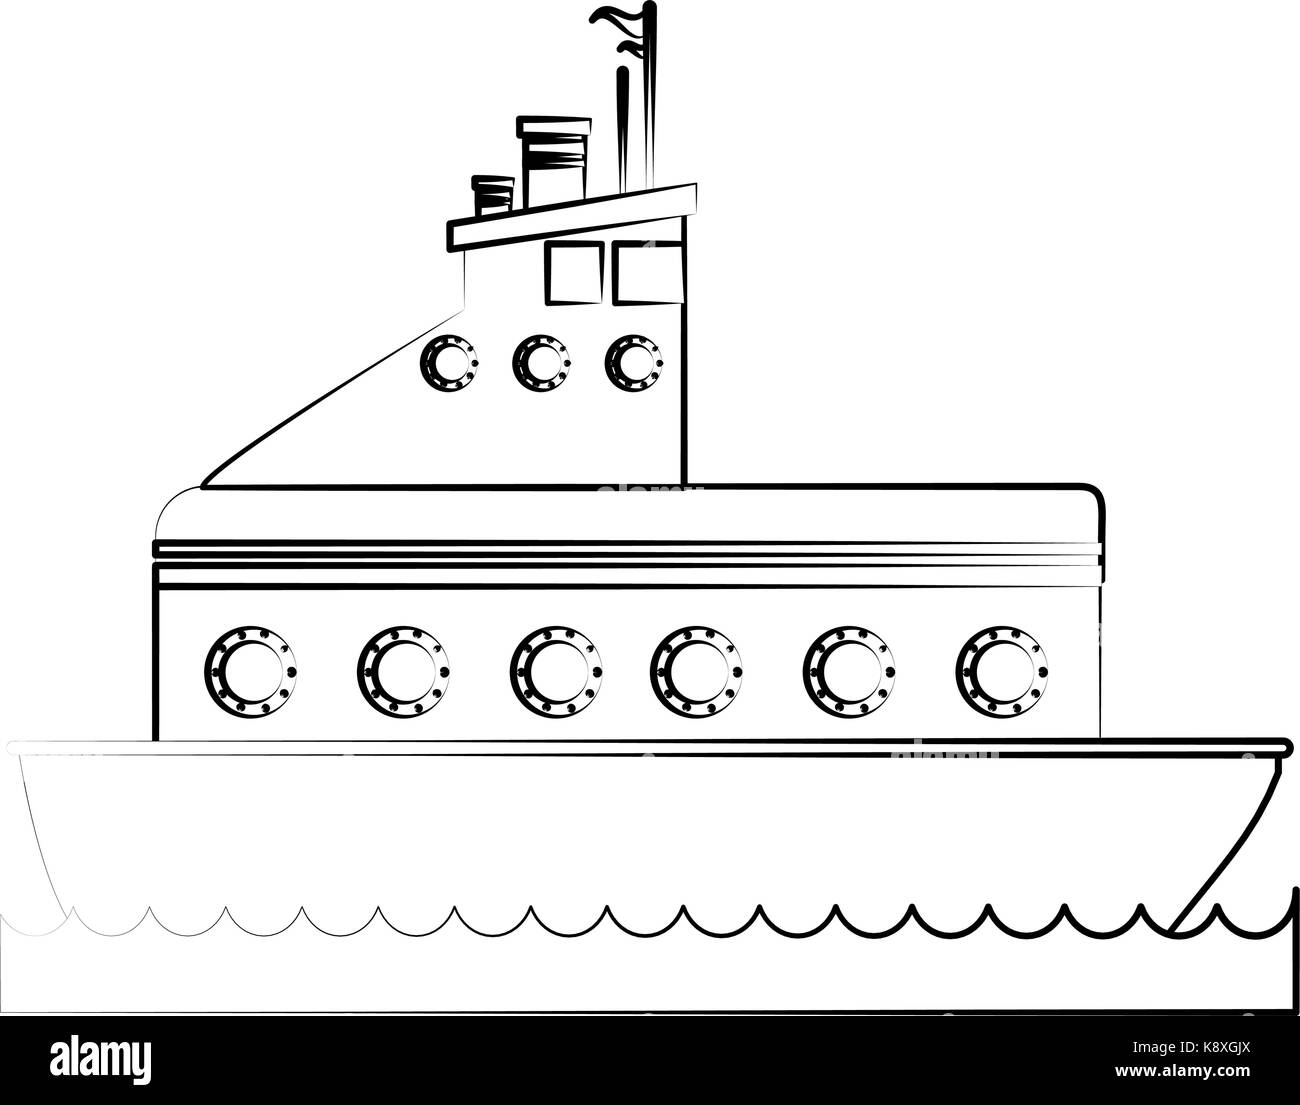 Speedboat black and white stock photos images alamy for National motor club compensation plan